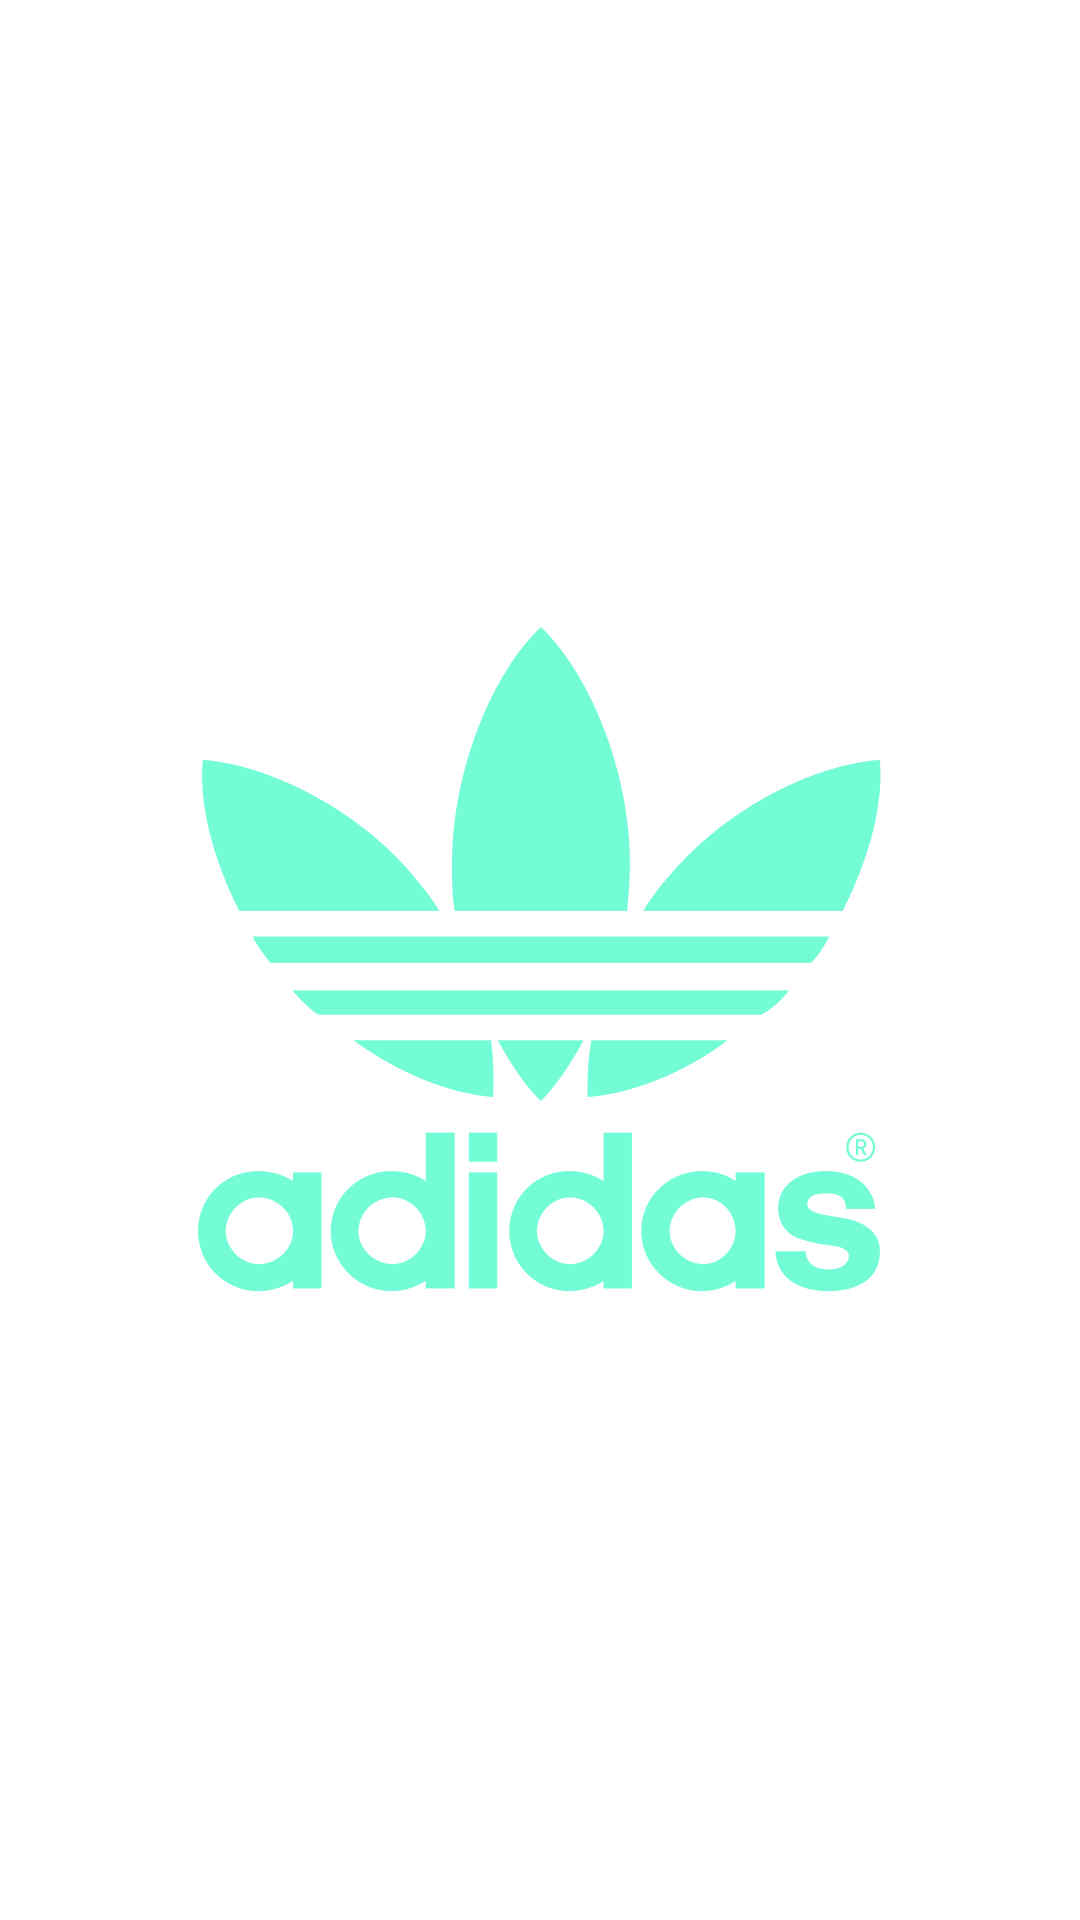 adidas08 - 25 adidas HQ Smartphone Wallpaper Collection